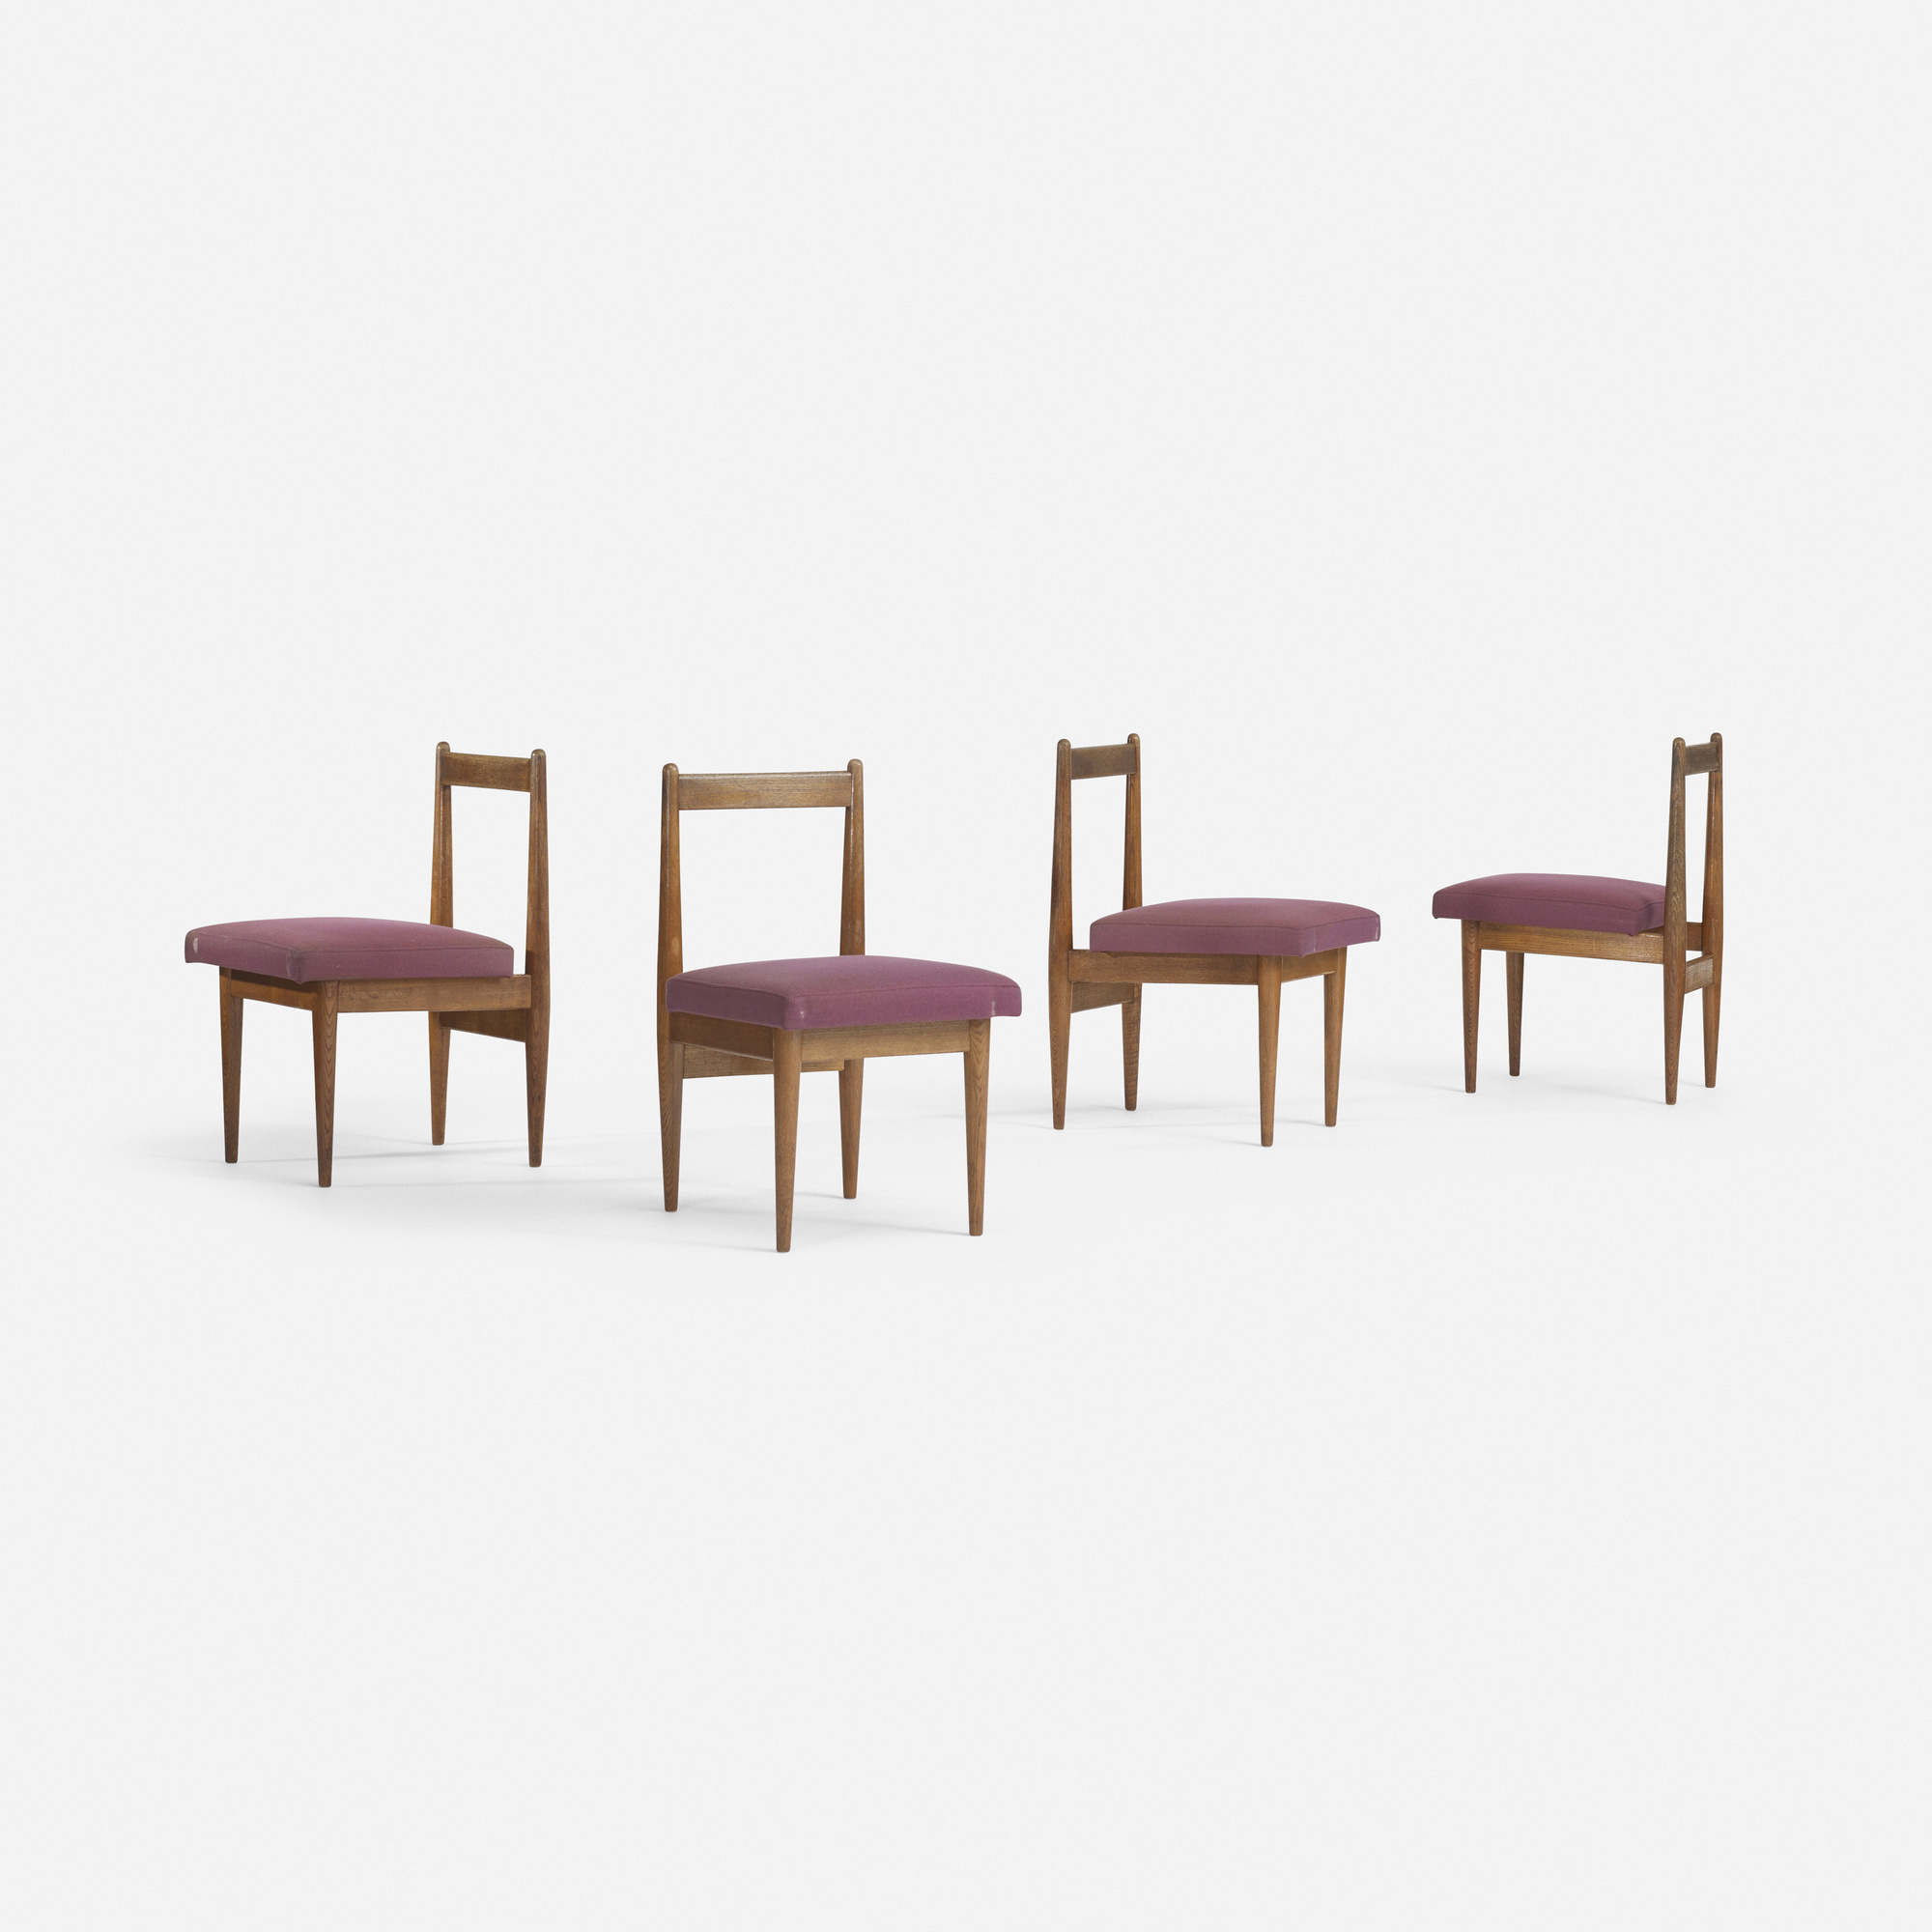 544: Katsuo Matsumura / dining chairs, set of four (1 of 2)